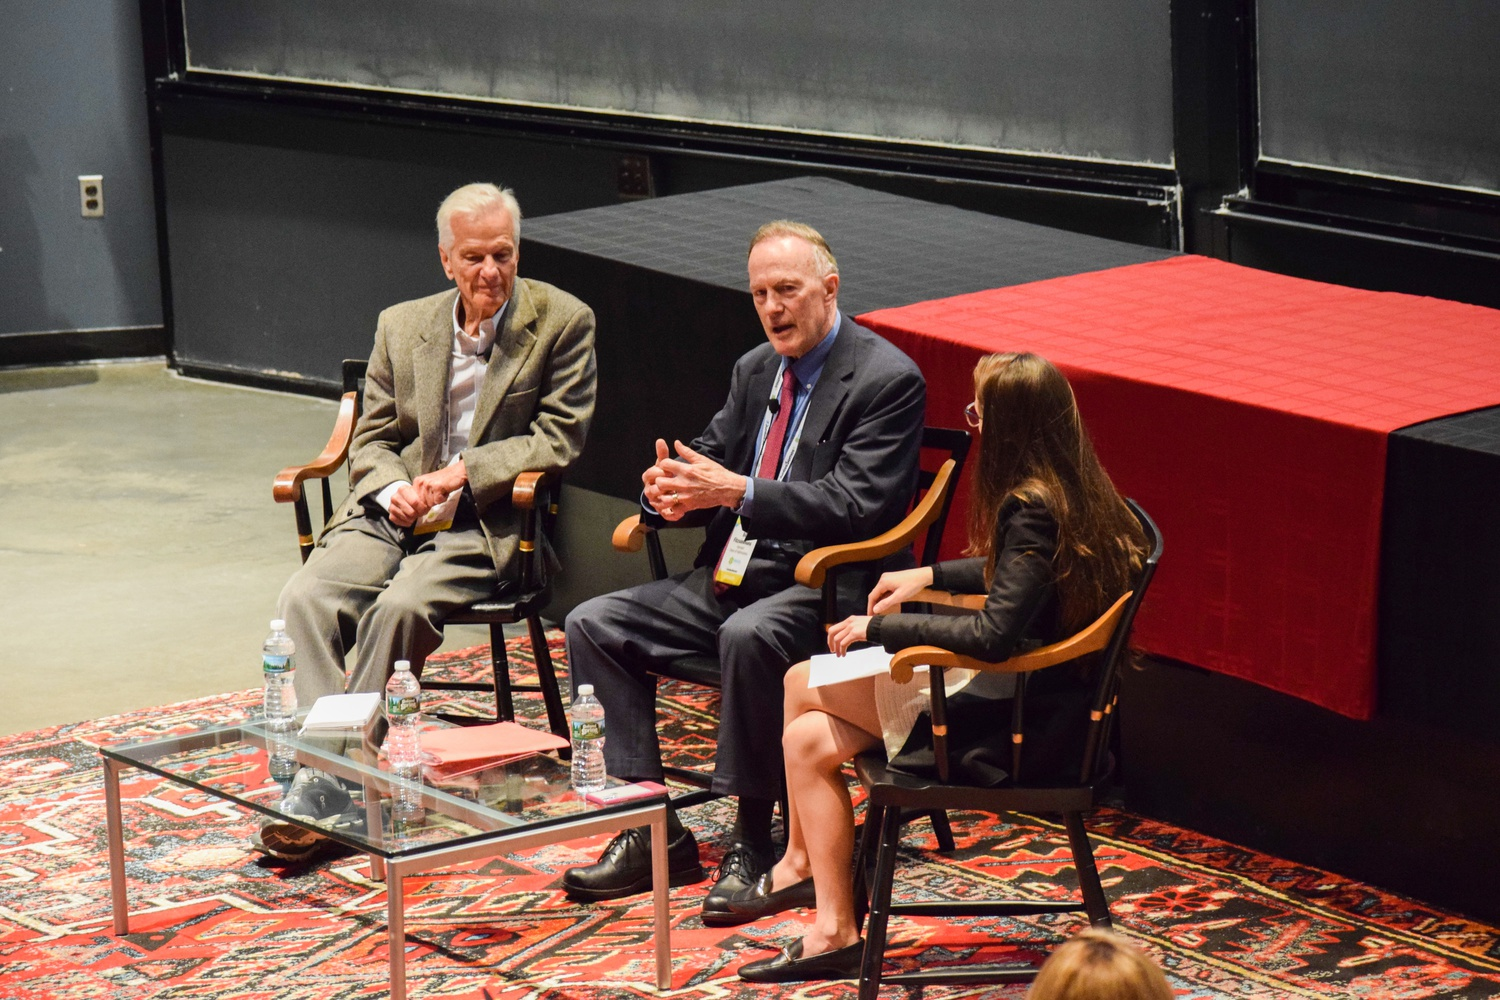 Dean of Admissions and Financial Aid William R. Fitzsimmons '67 speaks alongside Jorge Paulo Lemann and Larissa Marahão Rocha '17 at the annual Brazil Conference on Saturday.